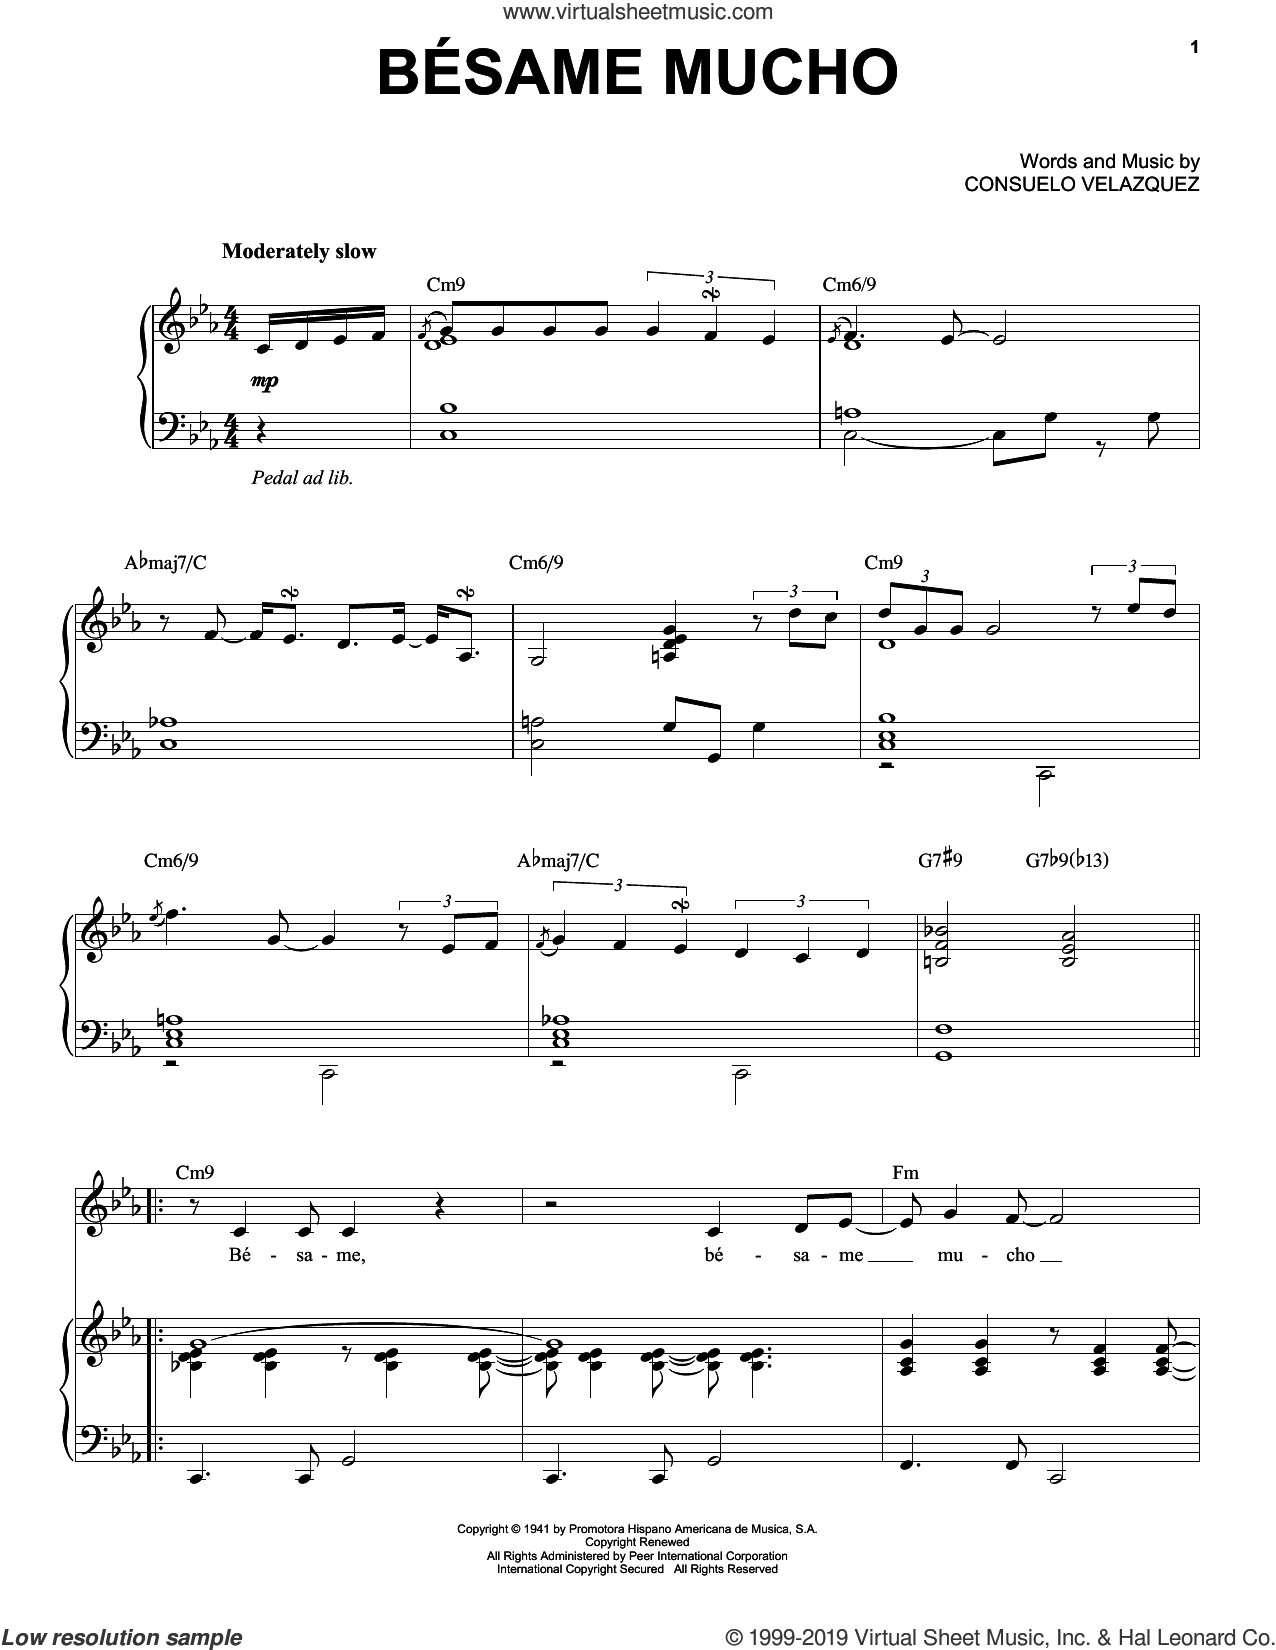 Besame Mucho (Kiss Me Much) sheet music for voice and piano by Andrea Bocelli and Consuelo Velazquez, intermediate skill level